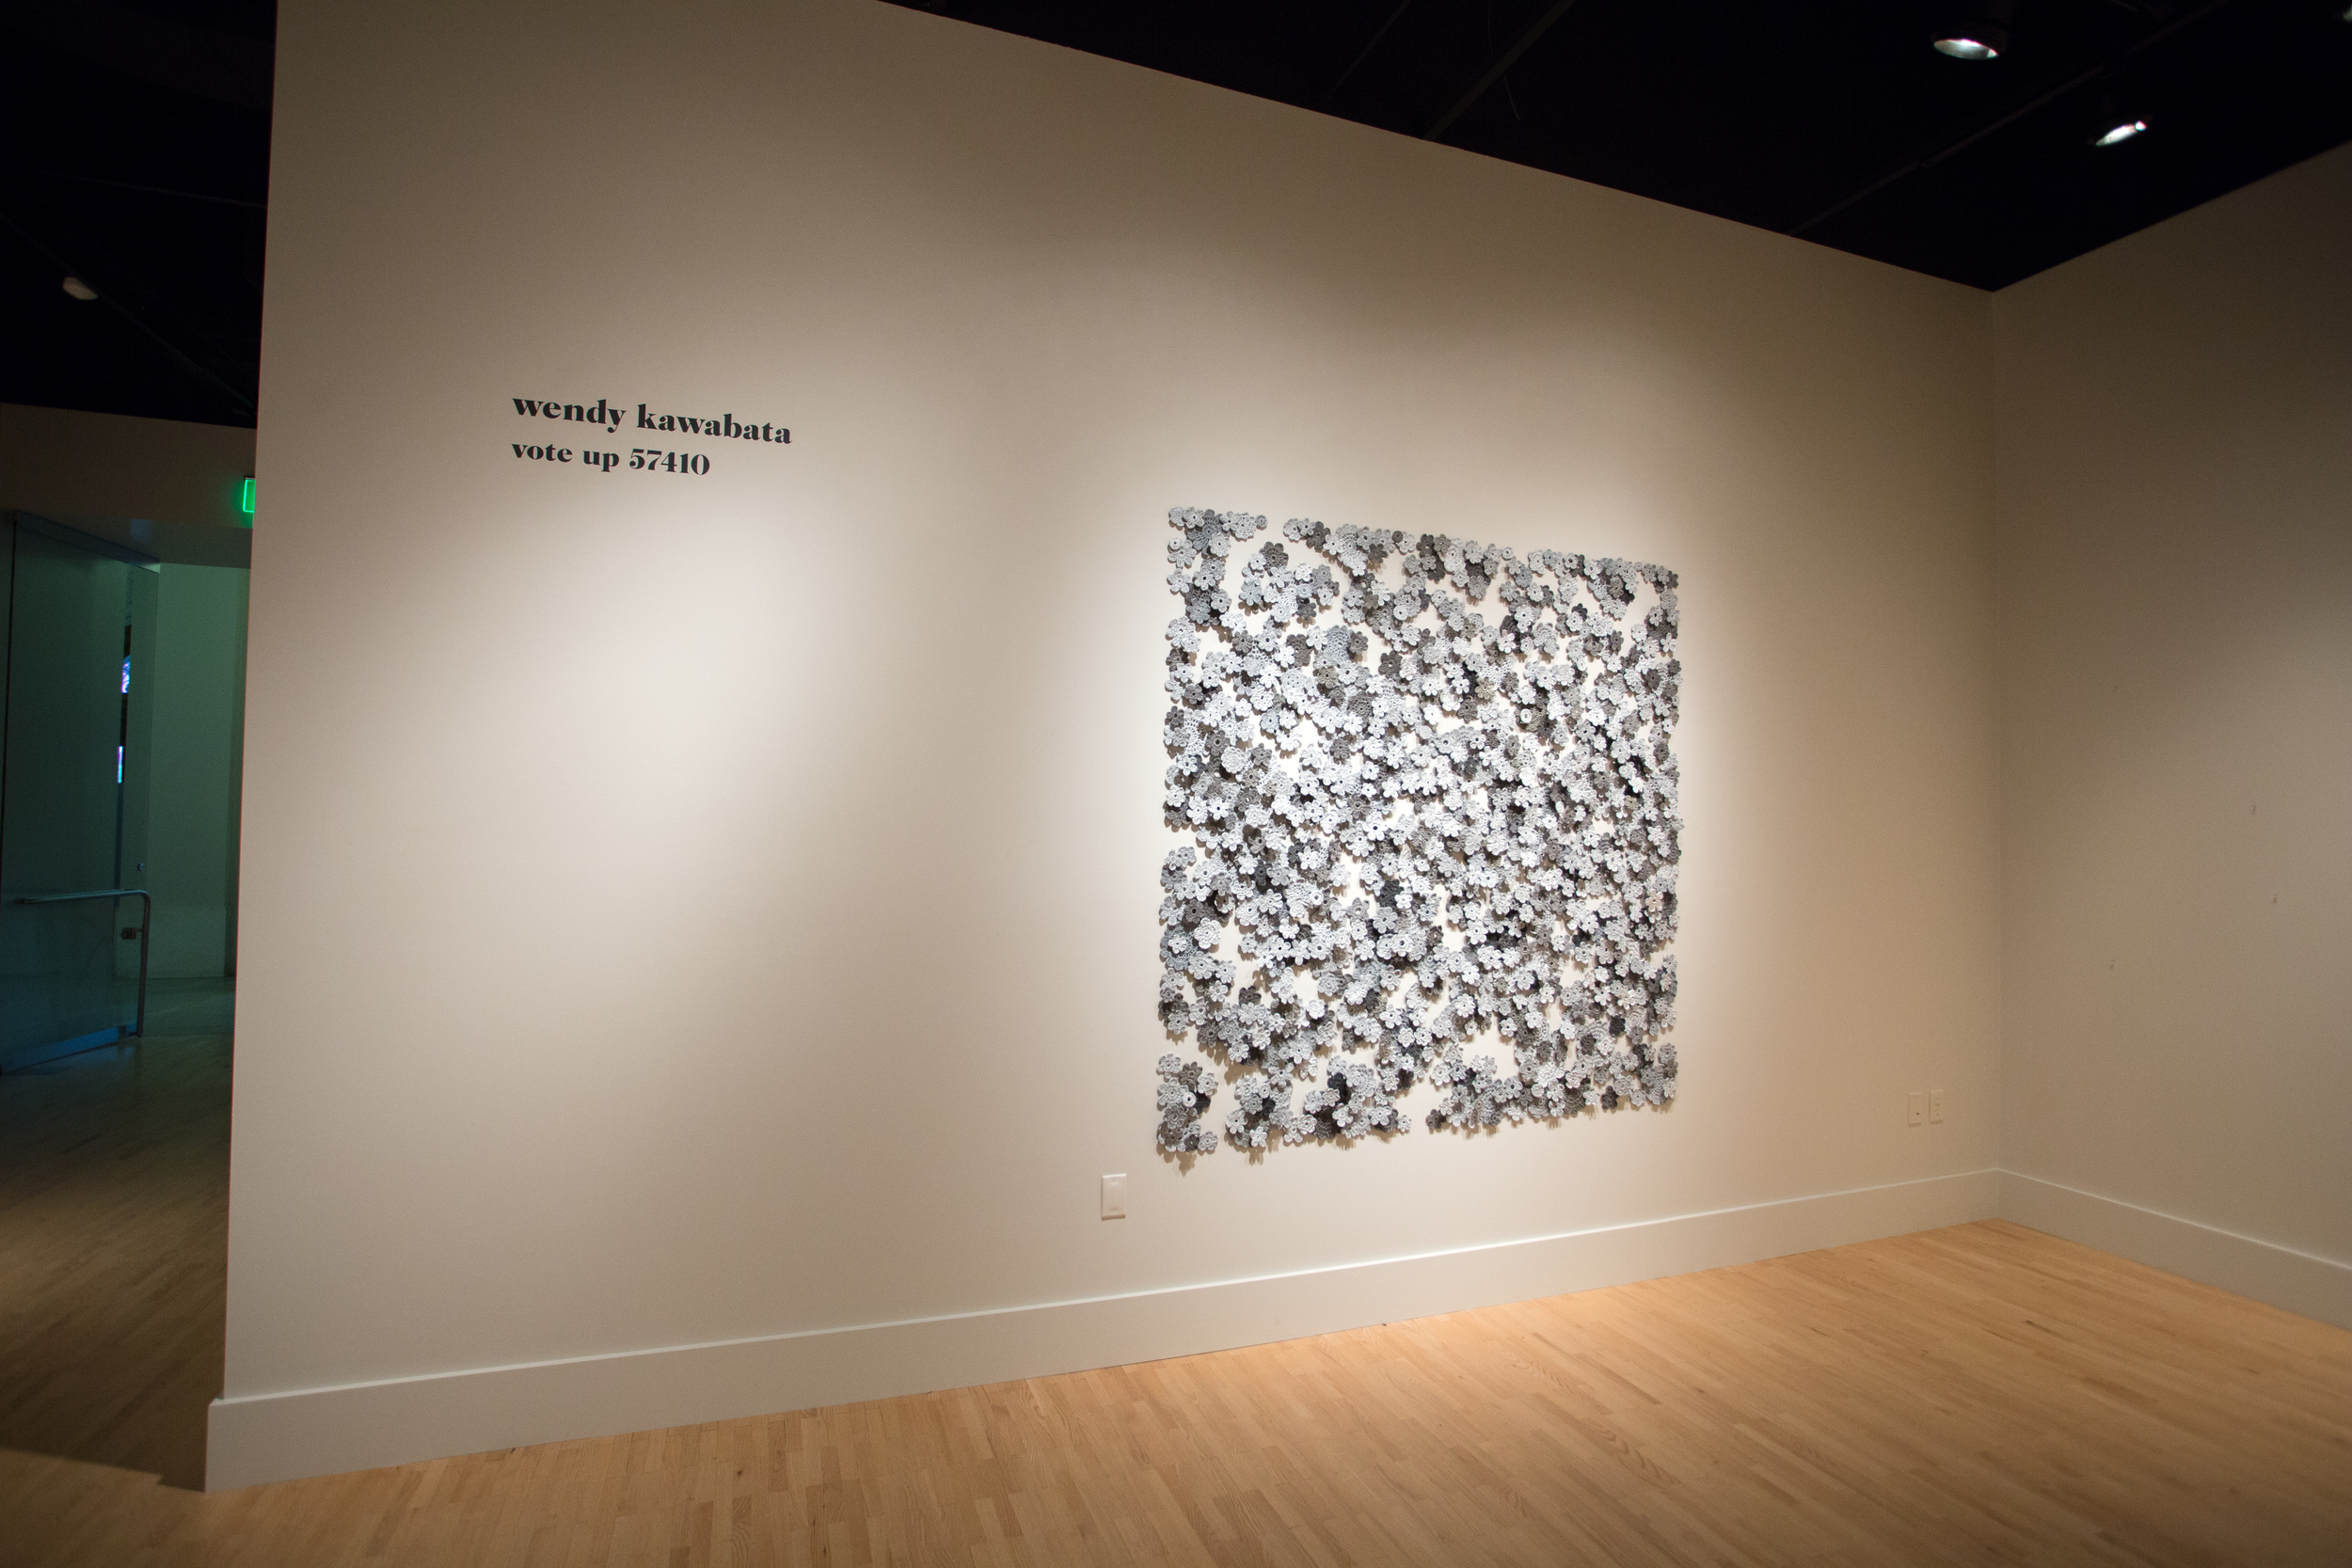 Wool and acrylic paint, installation at Kendall College of Art & Design, Grand Rapids, Michigan, 2014